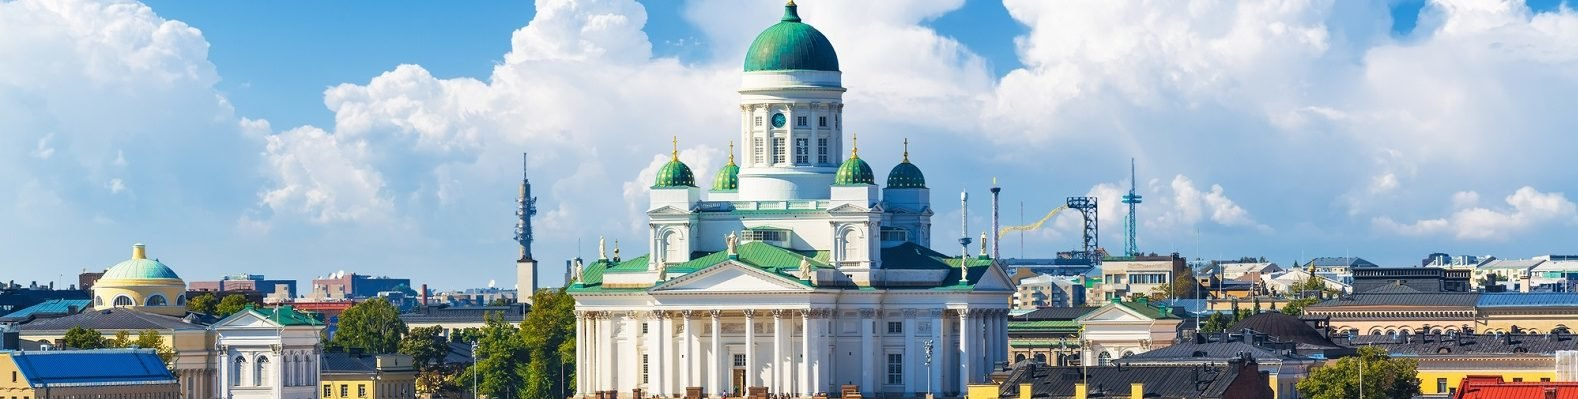 A summertime scene of Helsinki, with the Helsinki Cathedral featured prominently.